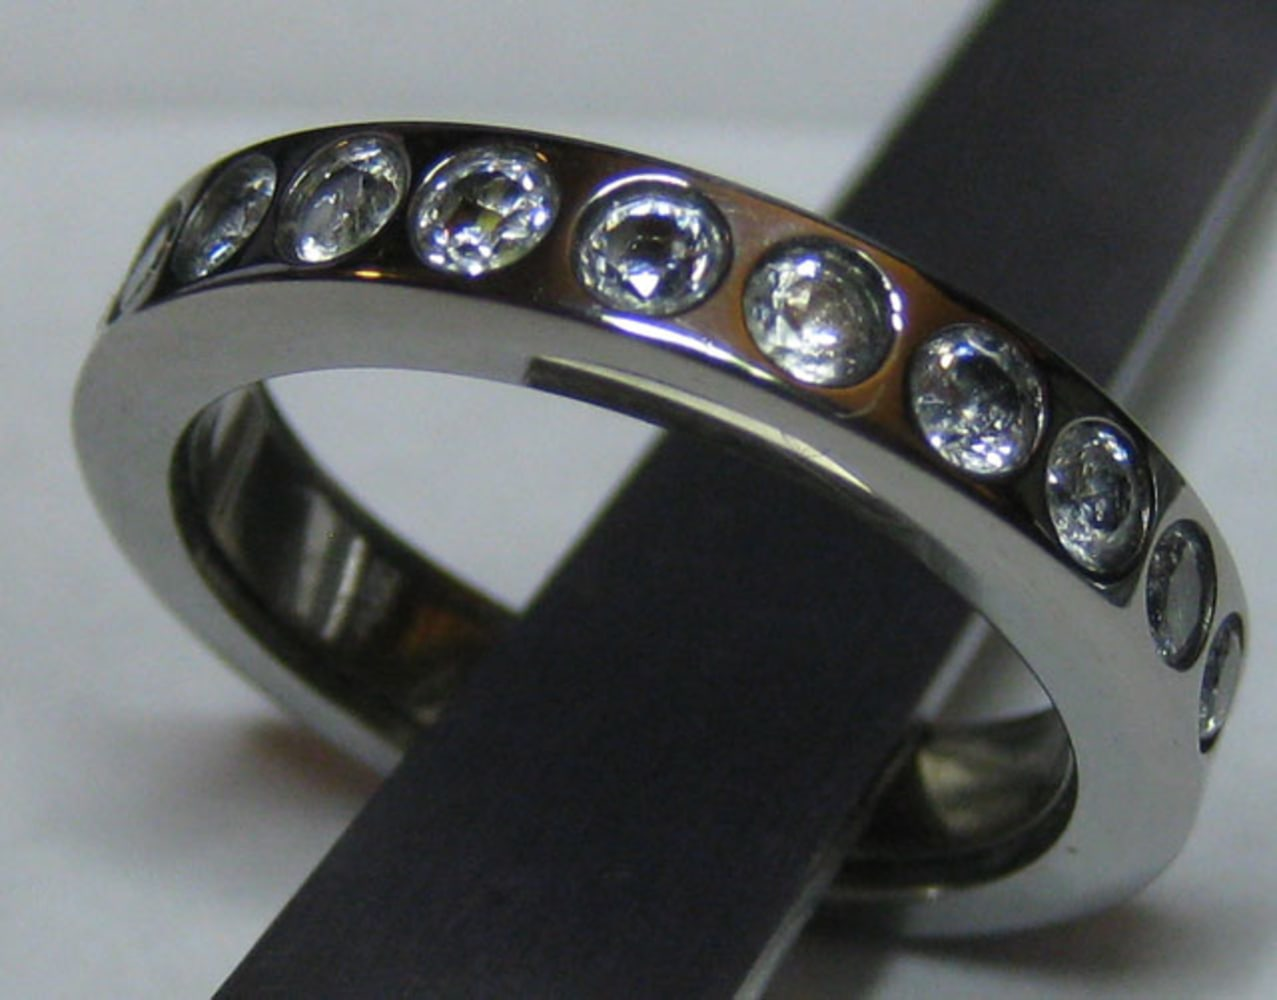 Electricians Wedding Ring Bhbrinfo